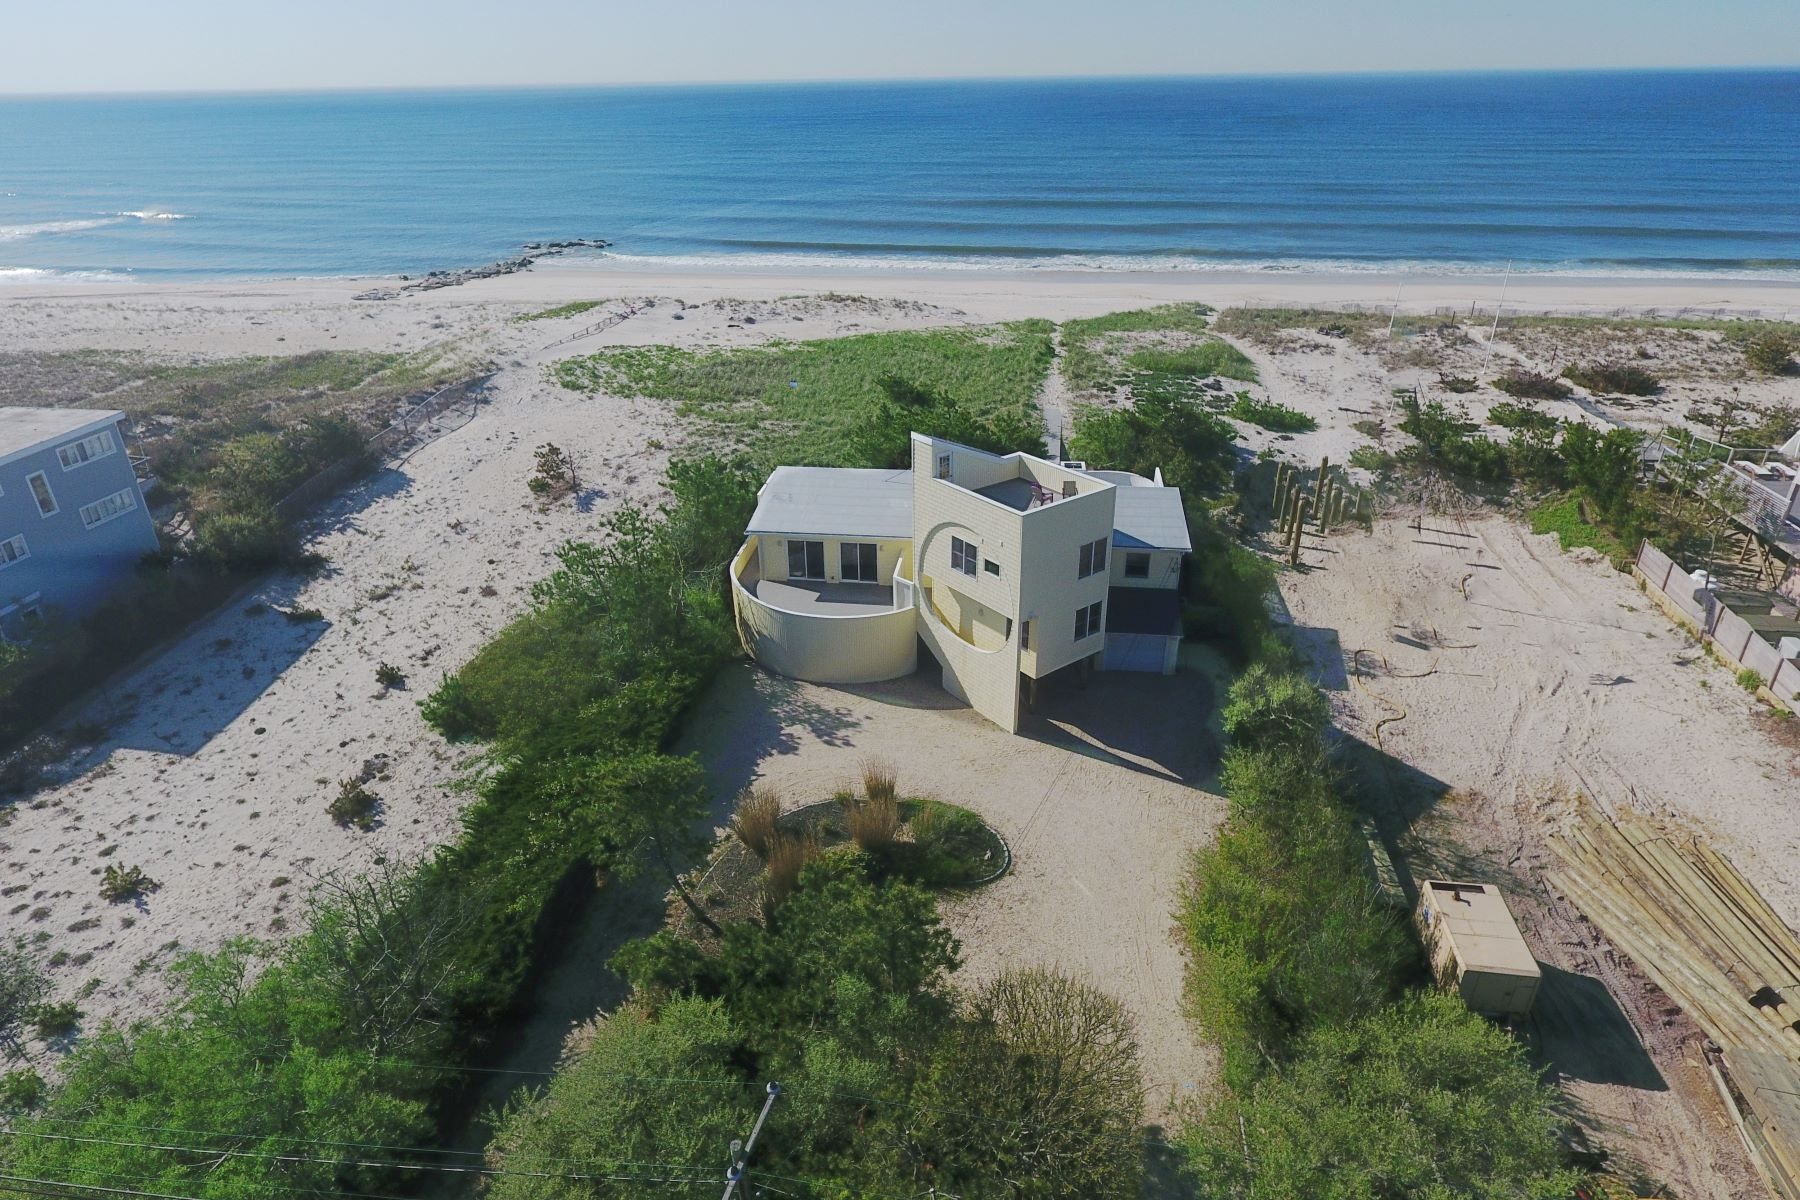 Single Family Homes for Sale at Westhampton 651 Dune Rd Westhampton, New York 11977 United States